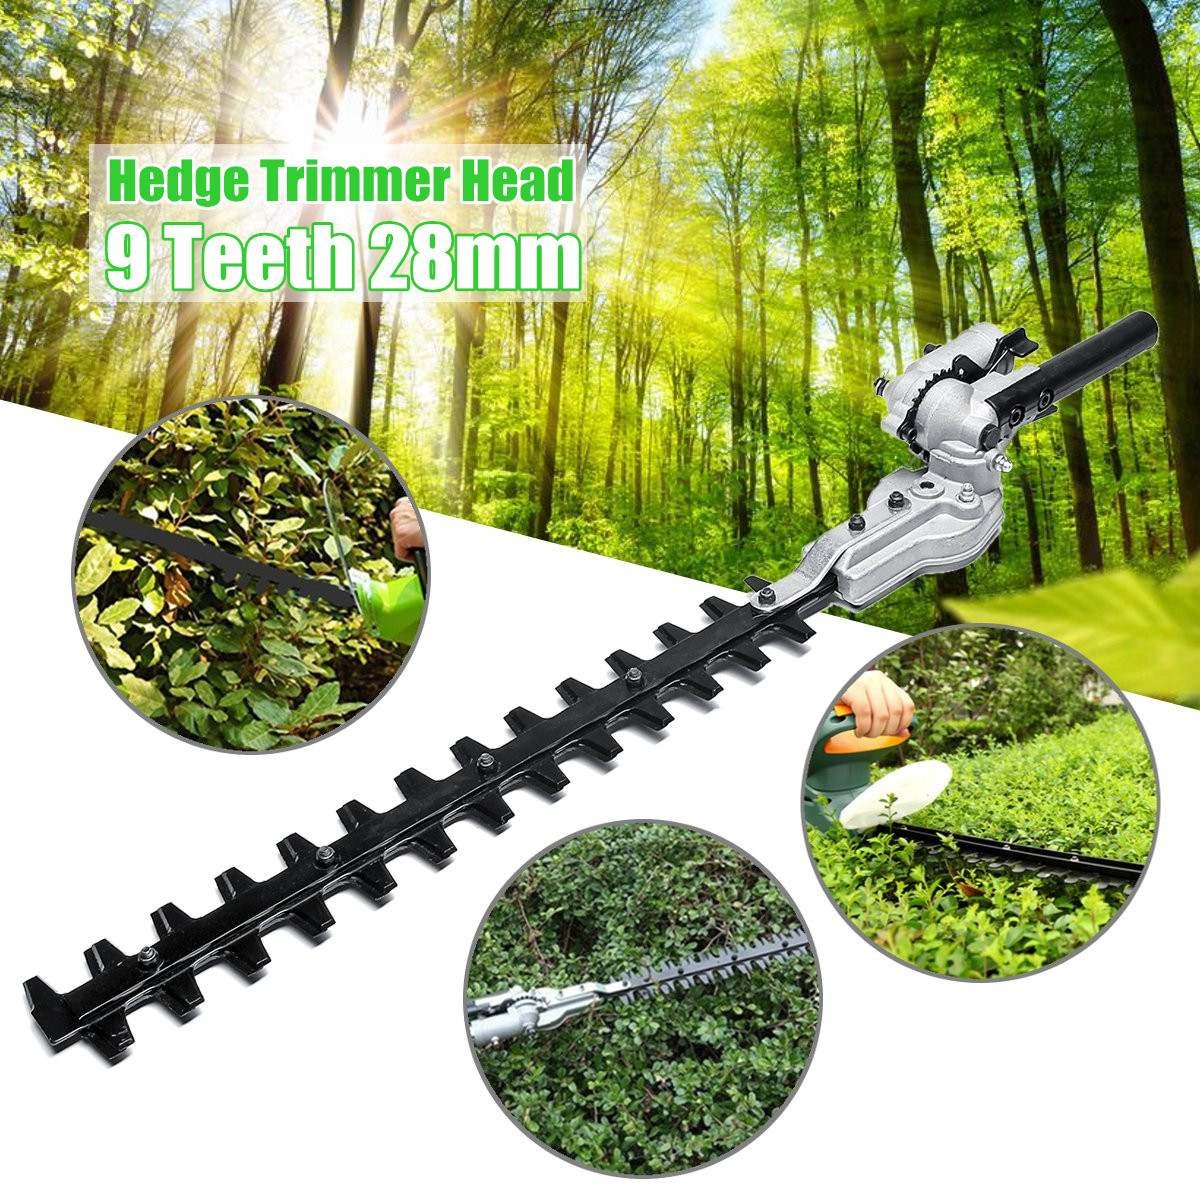 New 9 Teeth Gearbox 28mm Pole Hedge Trimmer Bush Cutter Head Attachment For Trimming Hedges Chainsaw Garden Power ToolsNew 9 Teeth Gearbox 28mm Pole Hedge Trimmer Bush Cutter Head Attachment For Trimming Hedges Chainsaw Garden Power Tools